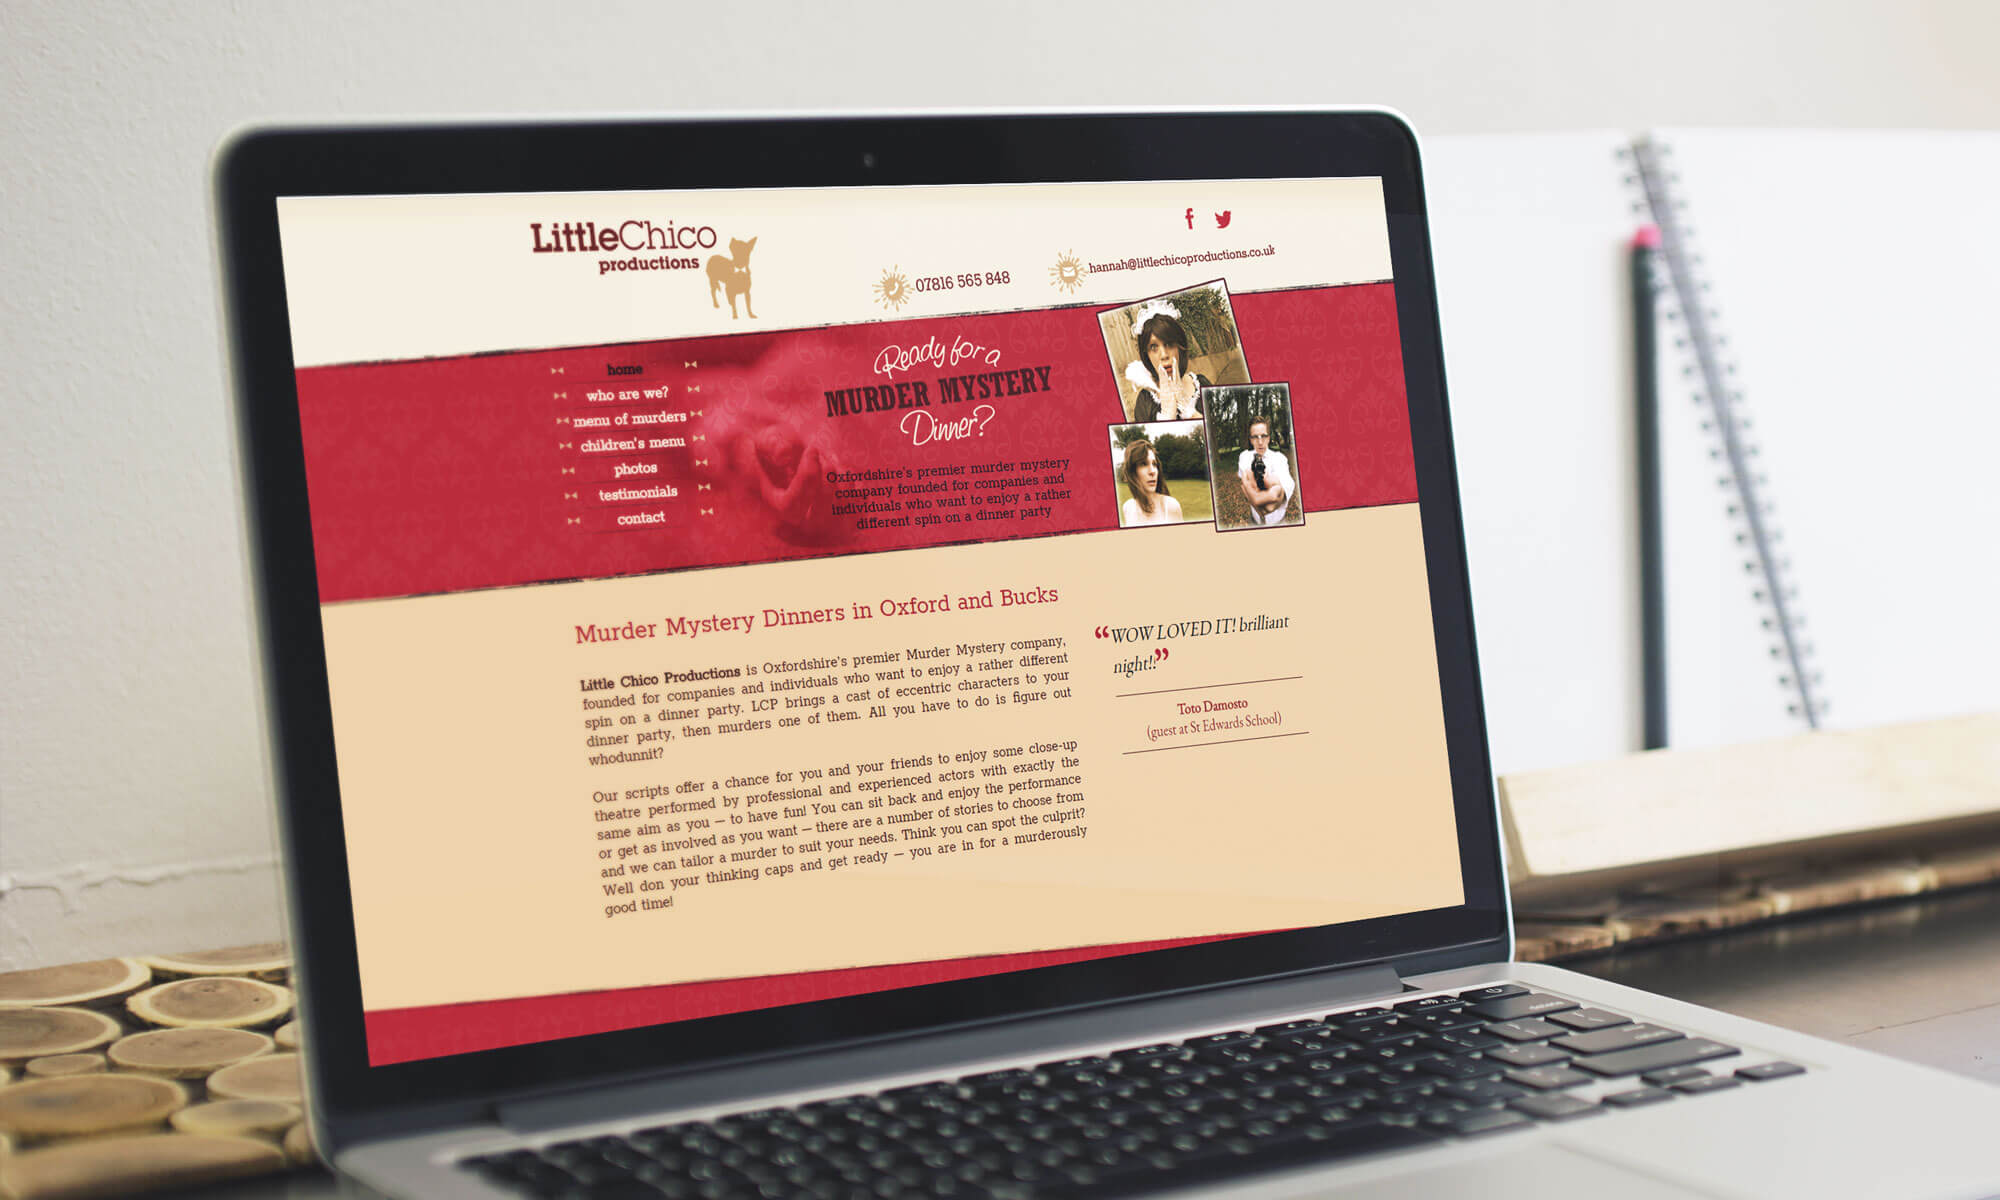 Little Chico website